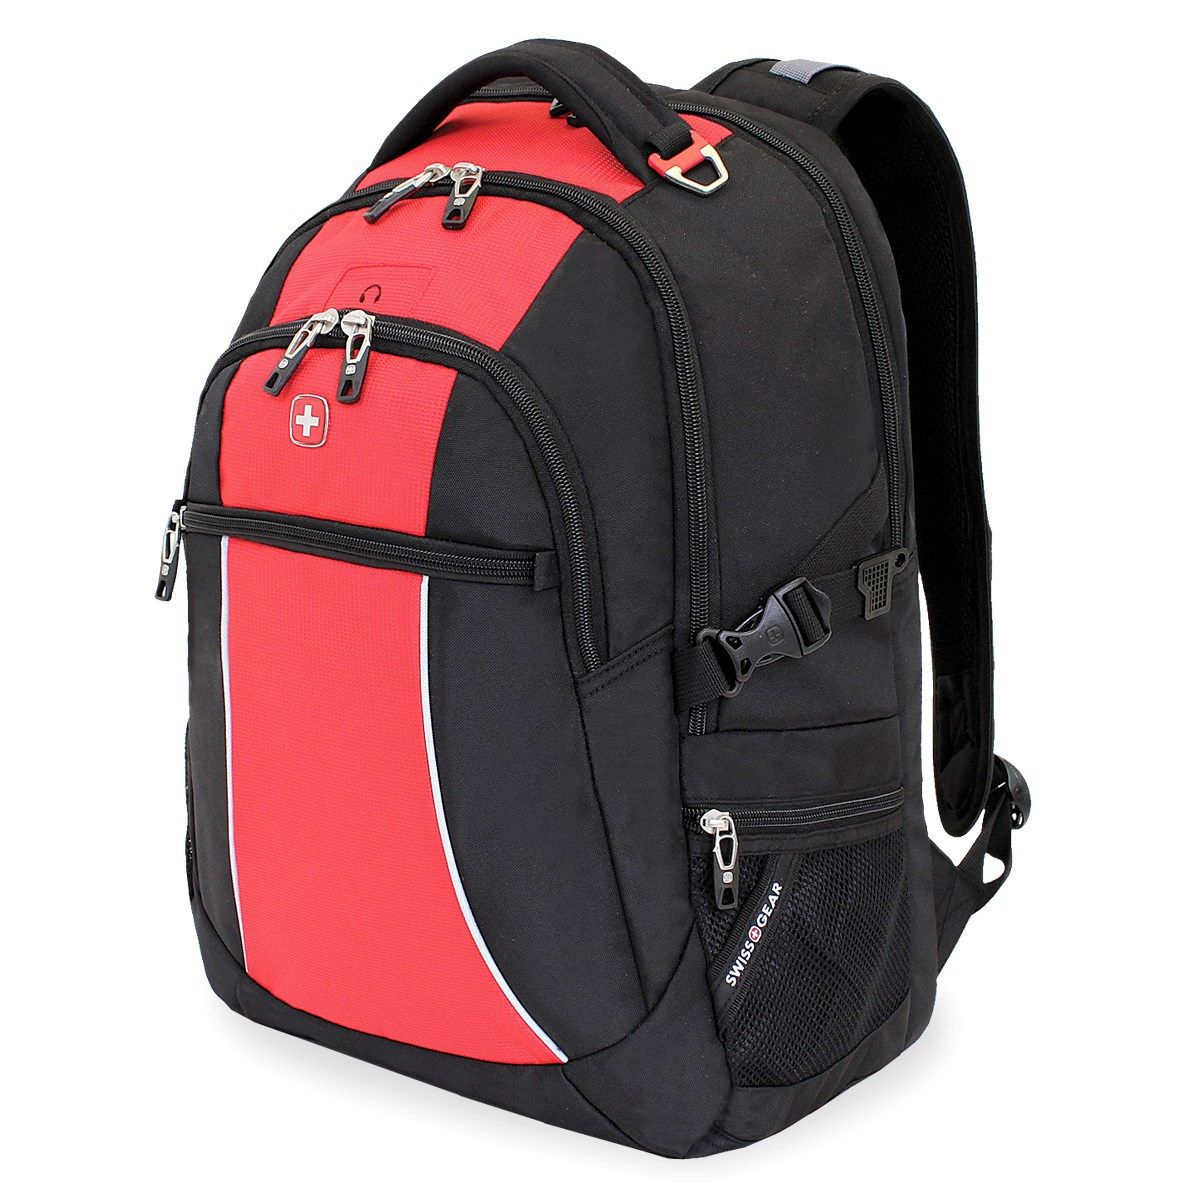 308bdb5126 Swissgear Travel Gear 5977 Laptop Backpack Exclusive